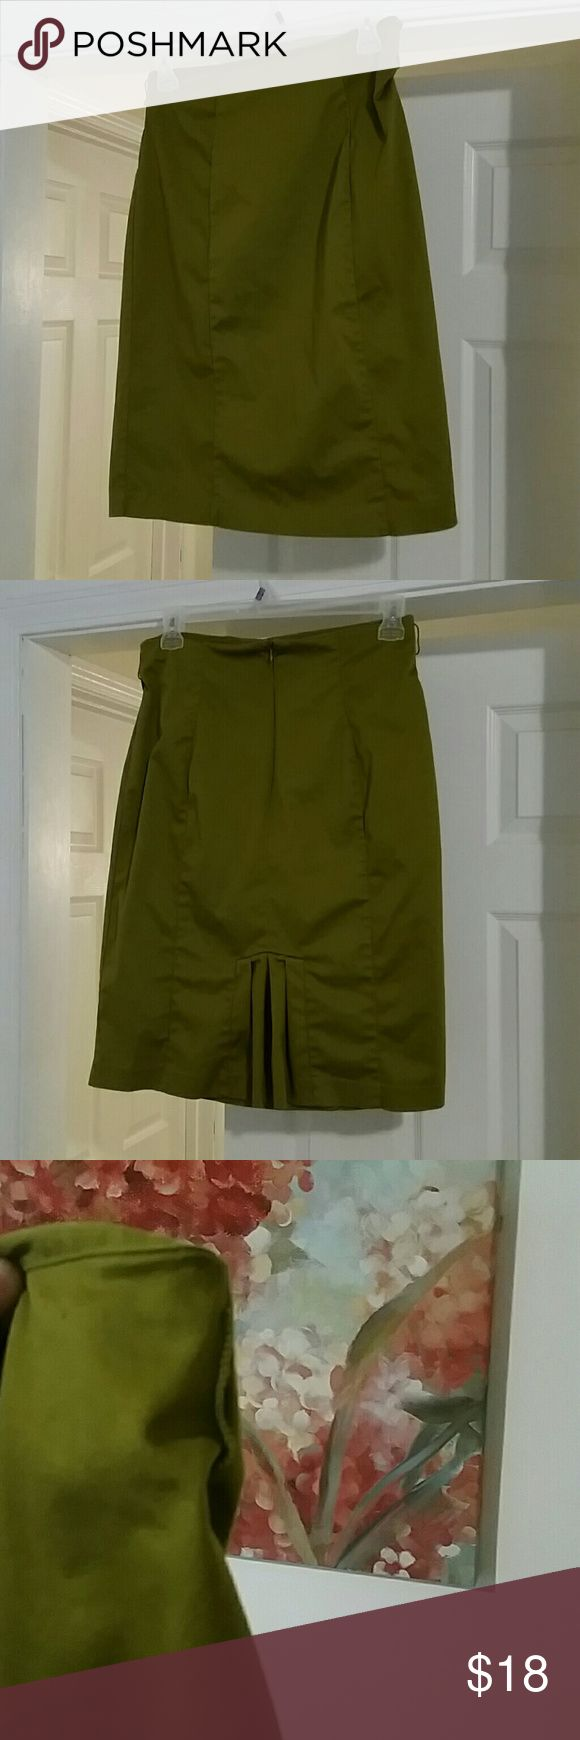 Dark Lime Green Pencil Skirt This skirt is unique and stylish. It has loops for a belt as well. In excellent condition! Worthington Skirts Pencil